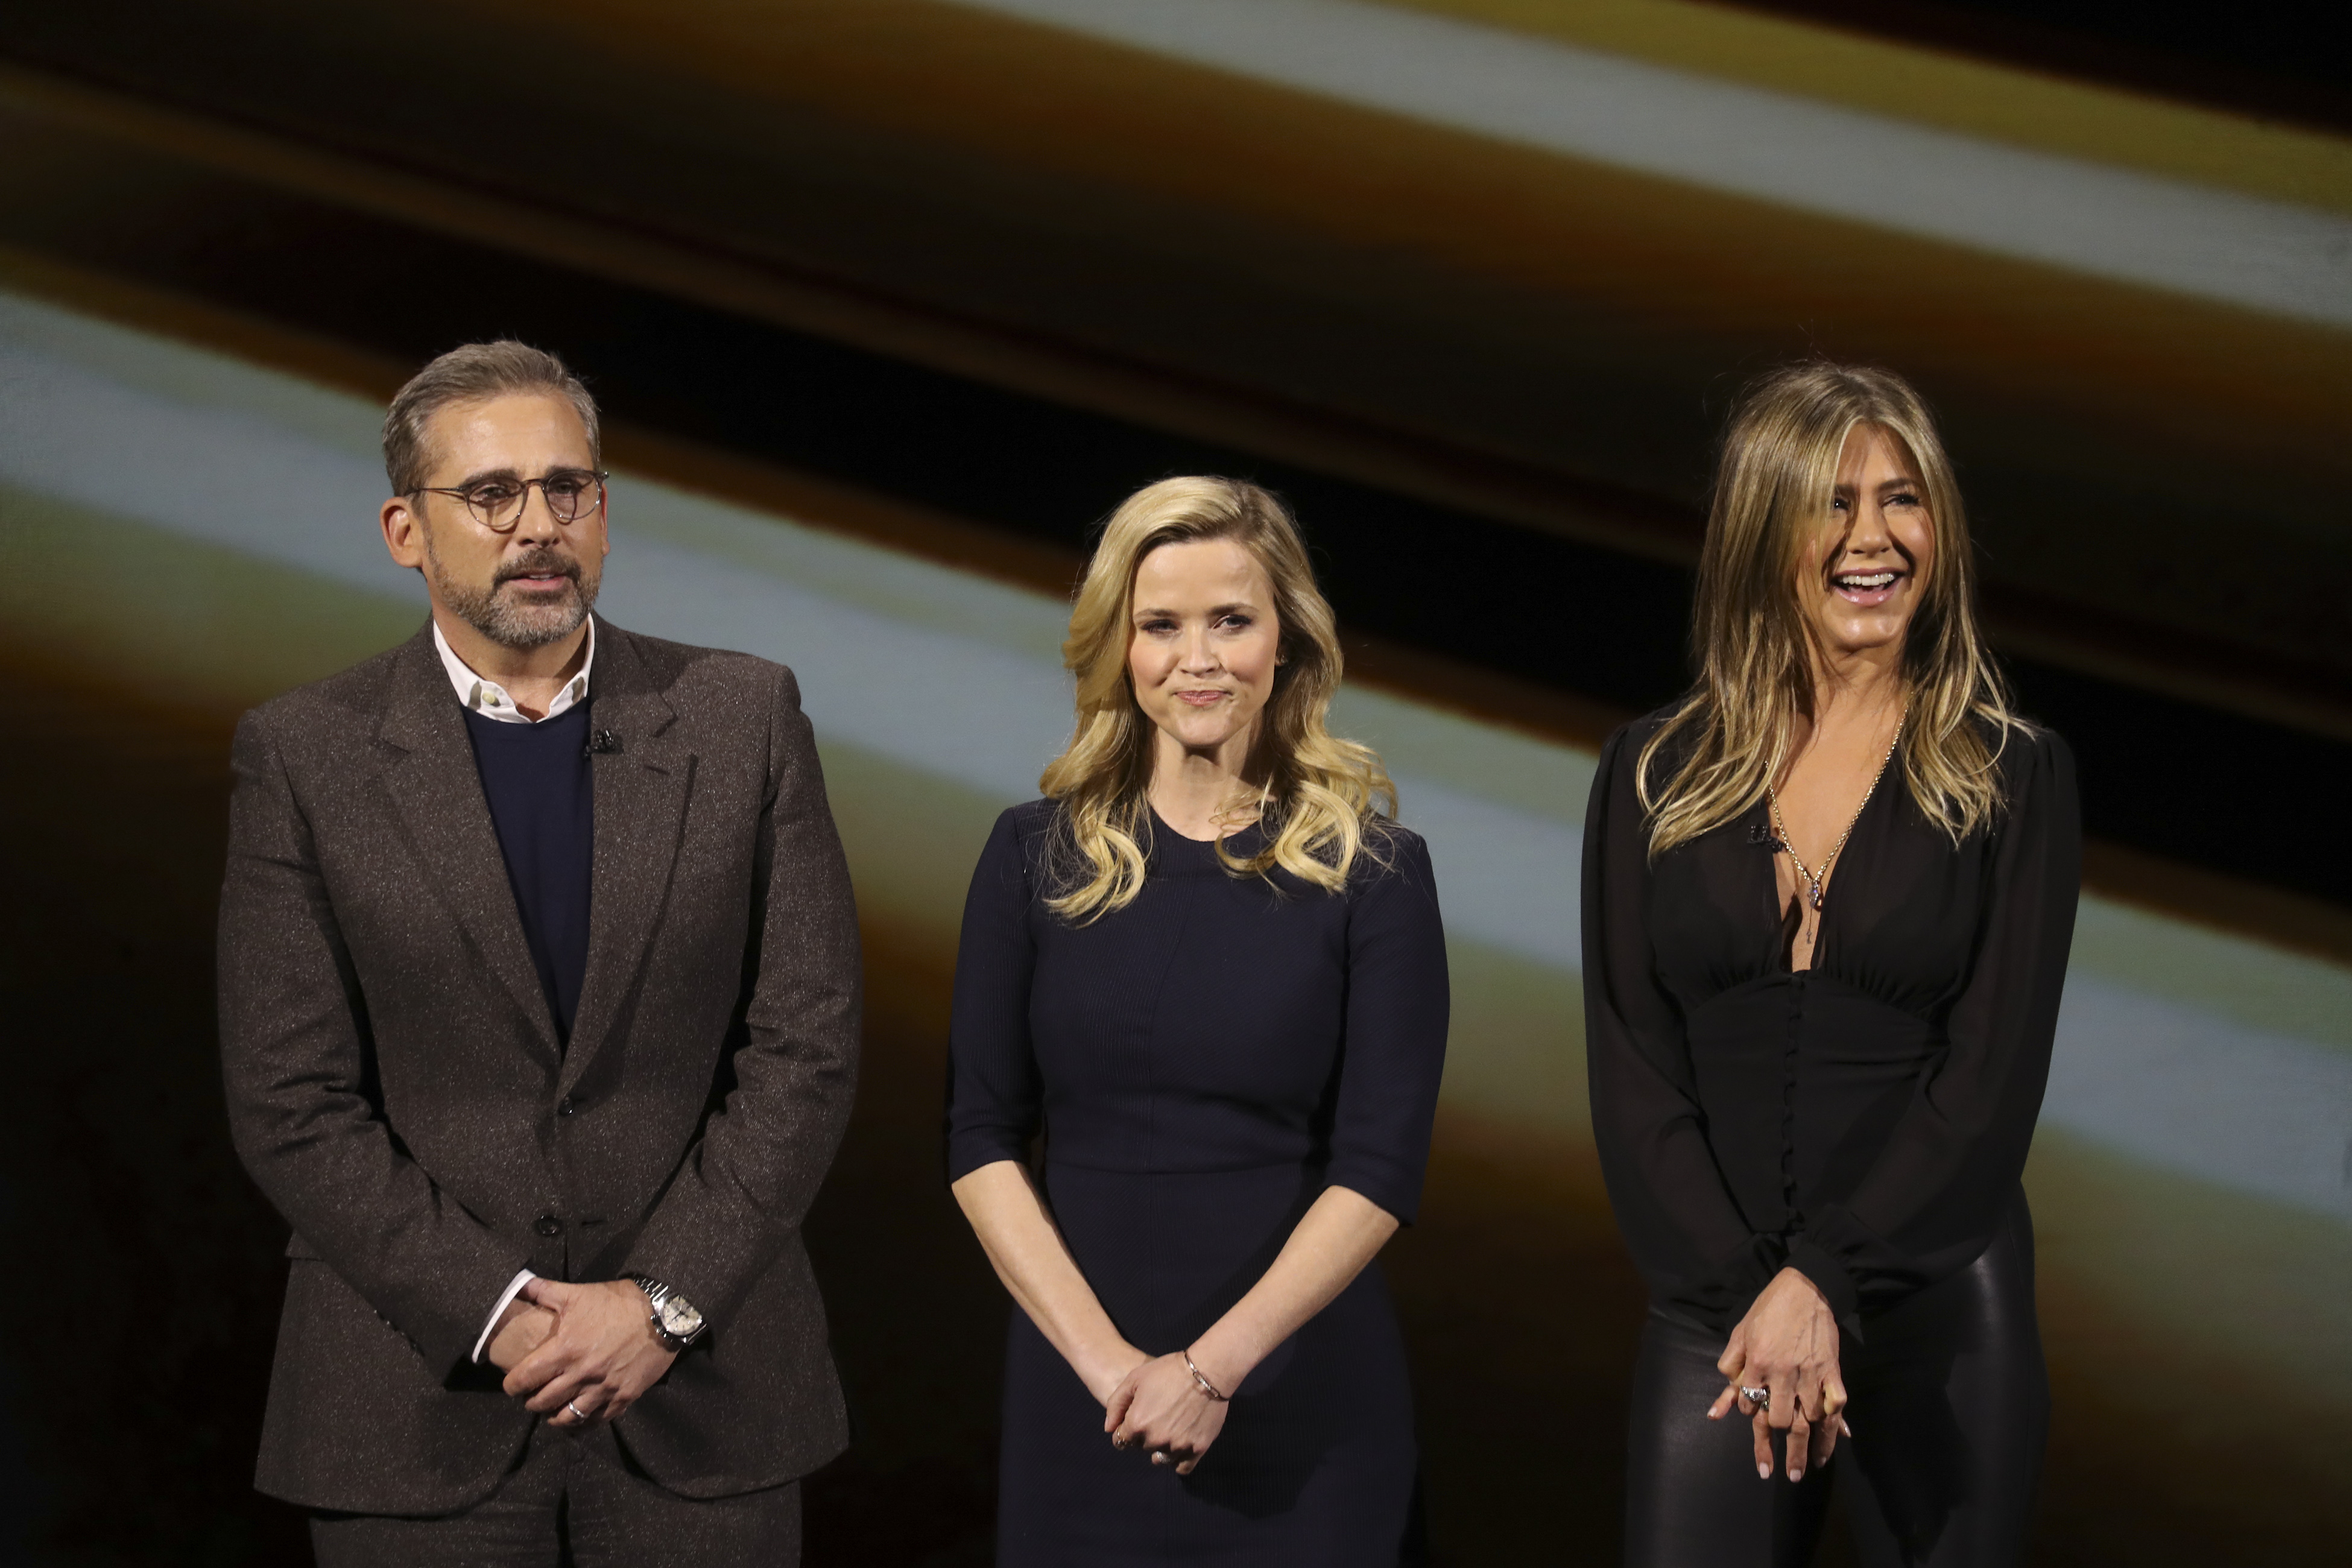 Steve Carell, Reese Witherspoon y Jennifer Aniston durante la presentación de Apple TV+